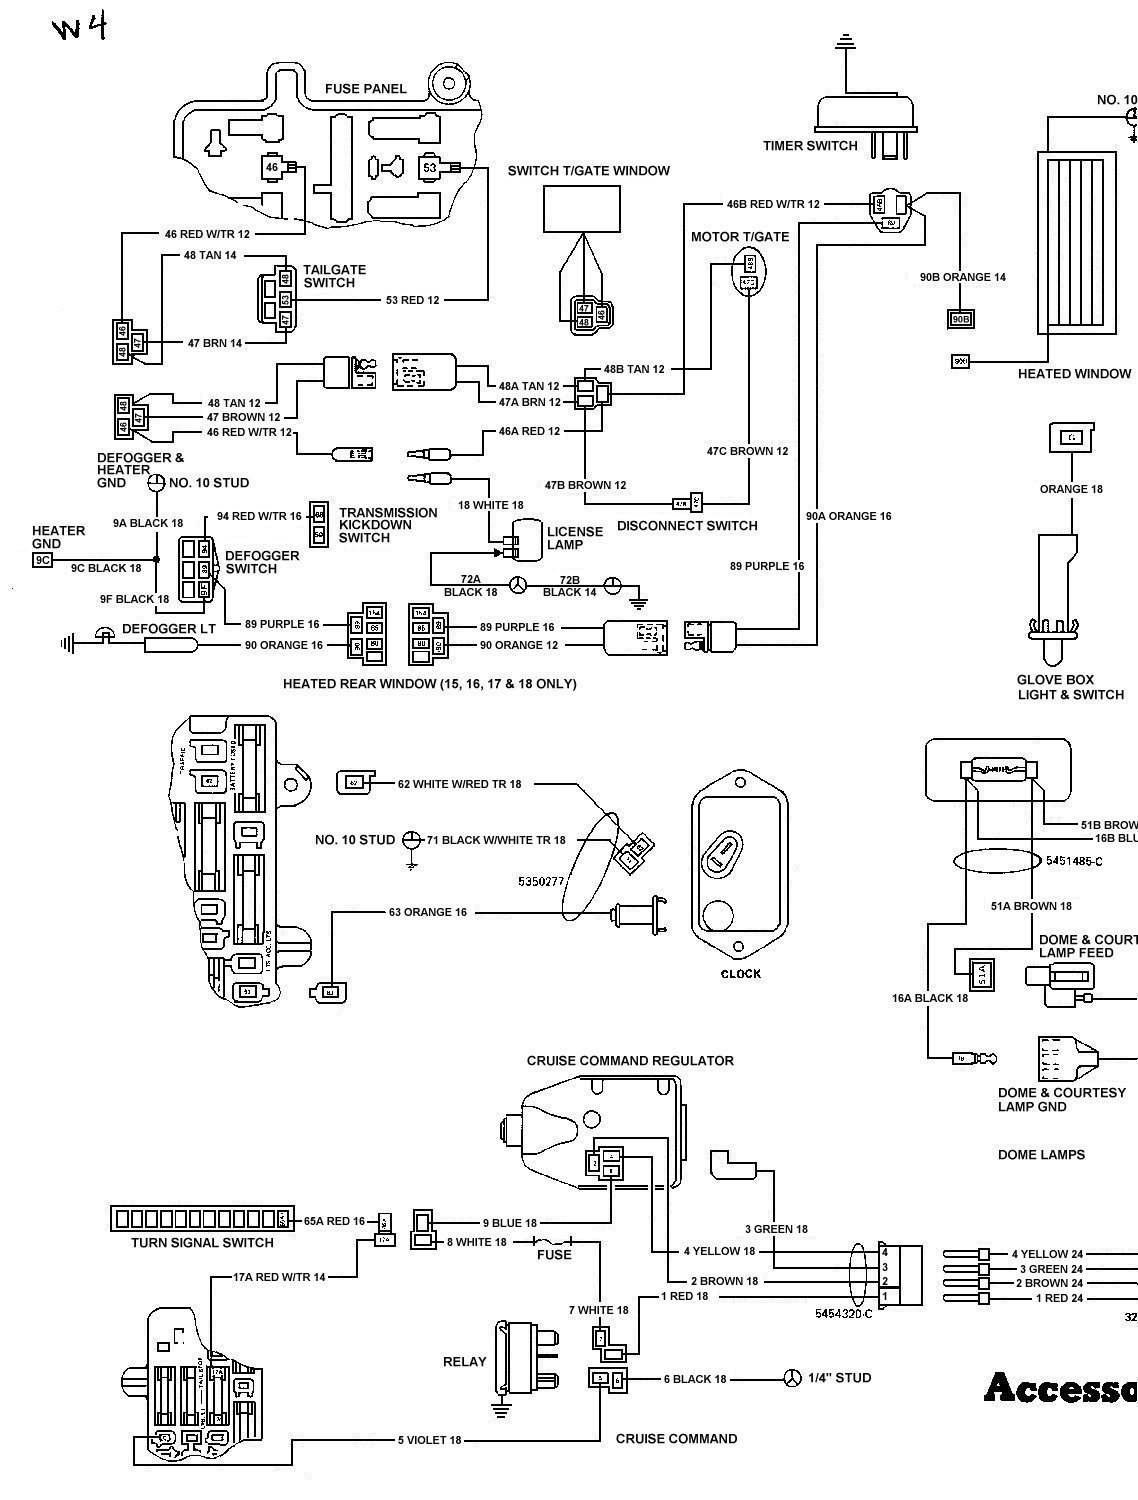 1984 Jeep Wiring Diagram Archive Of Automotive Cj7 Brake Light Scrambler Viewmotorjdi Org Rh Grand Wagoneer Cj